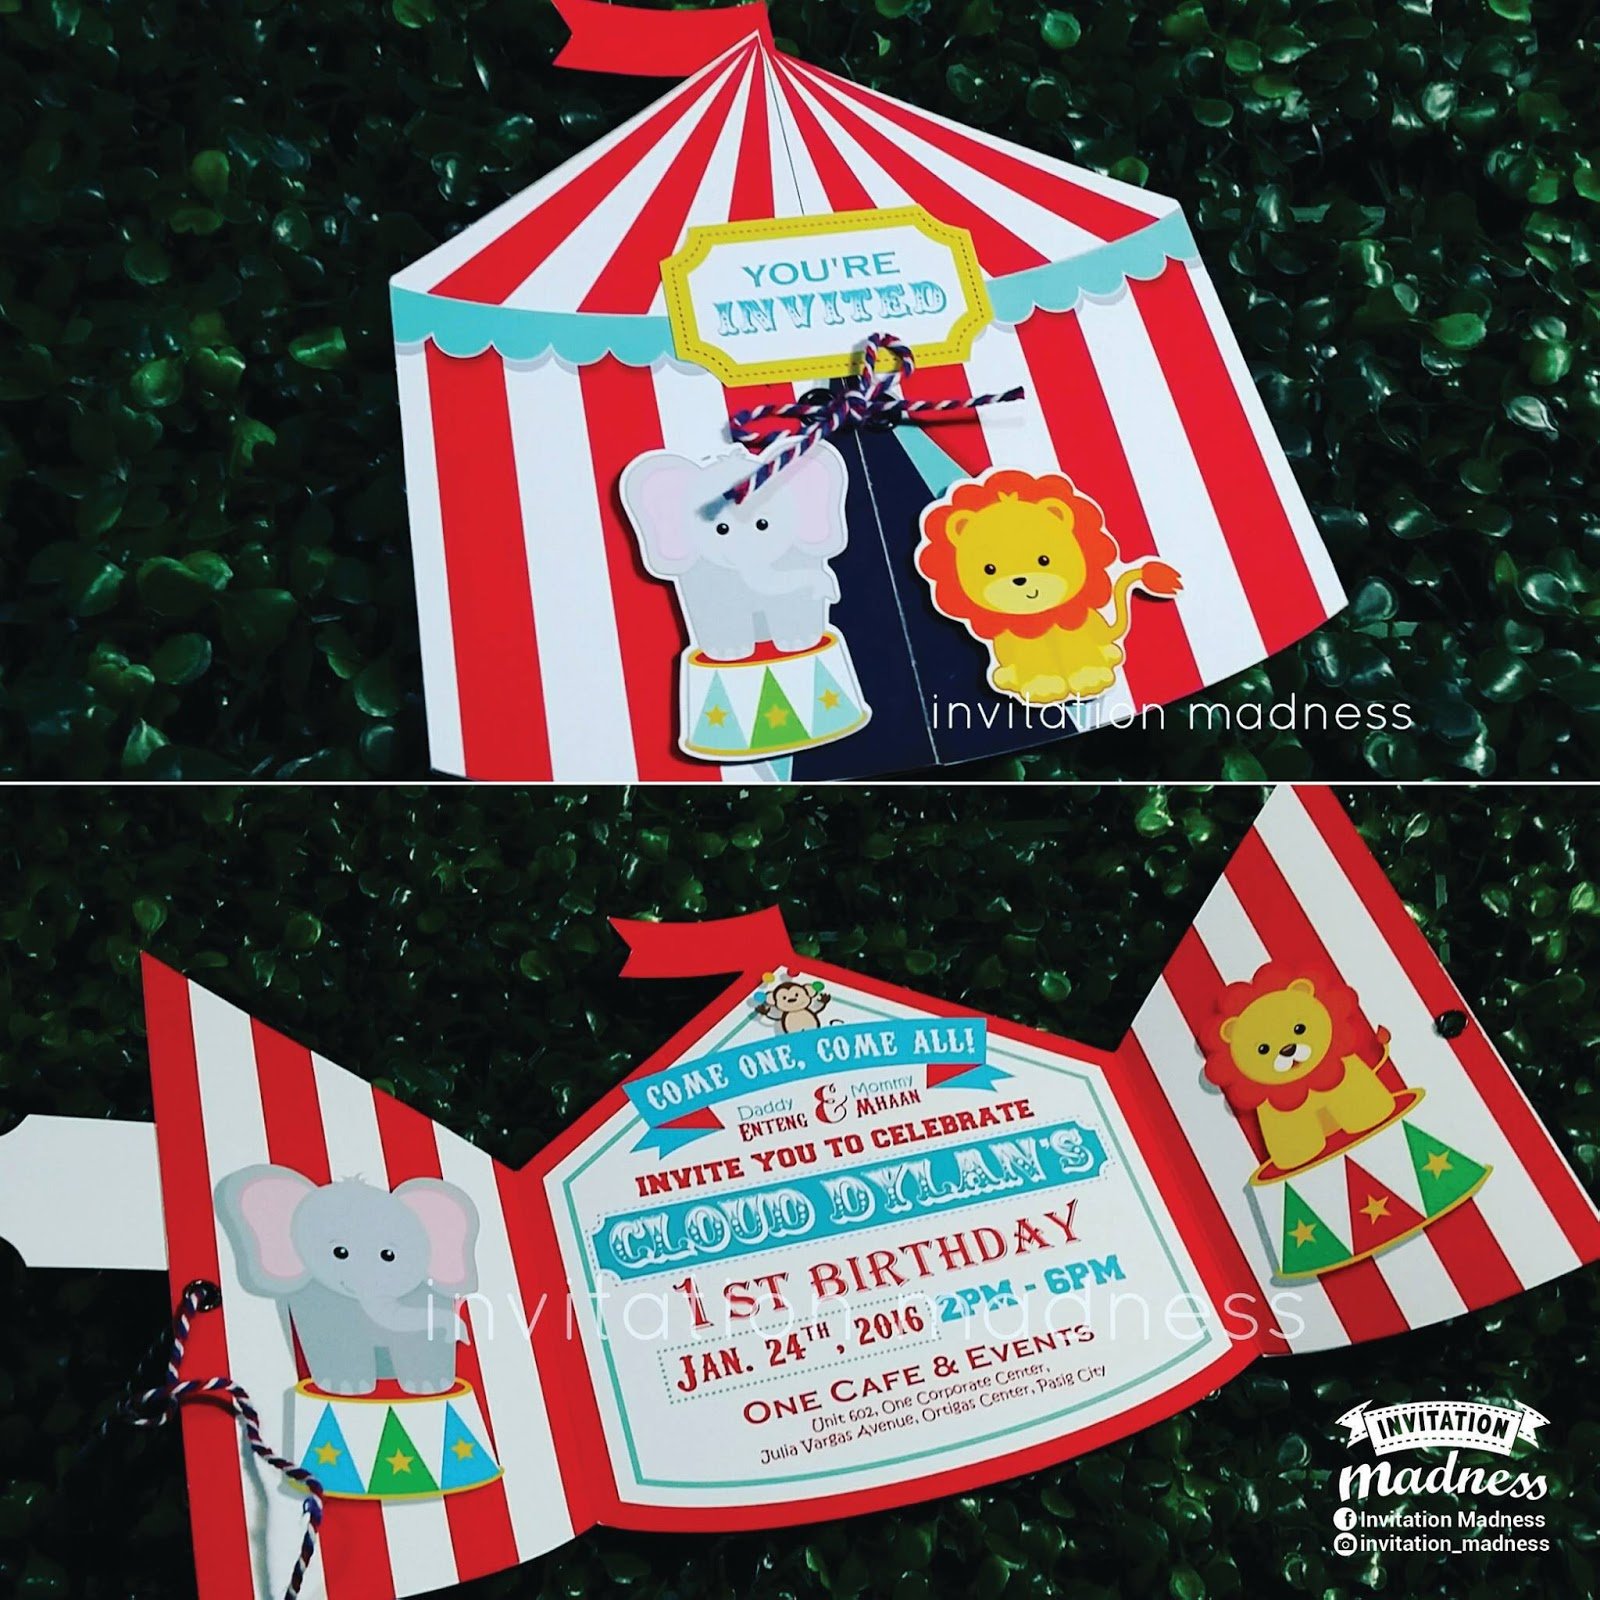 How To Make Your Own Party Invitations is beautiful invitations design